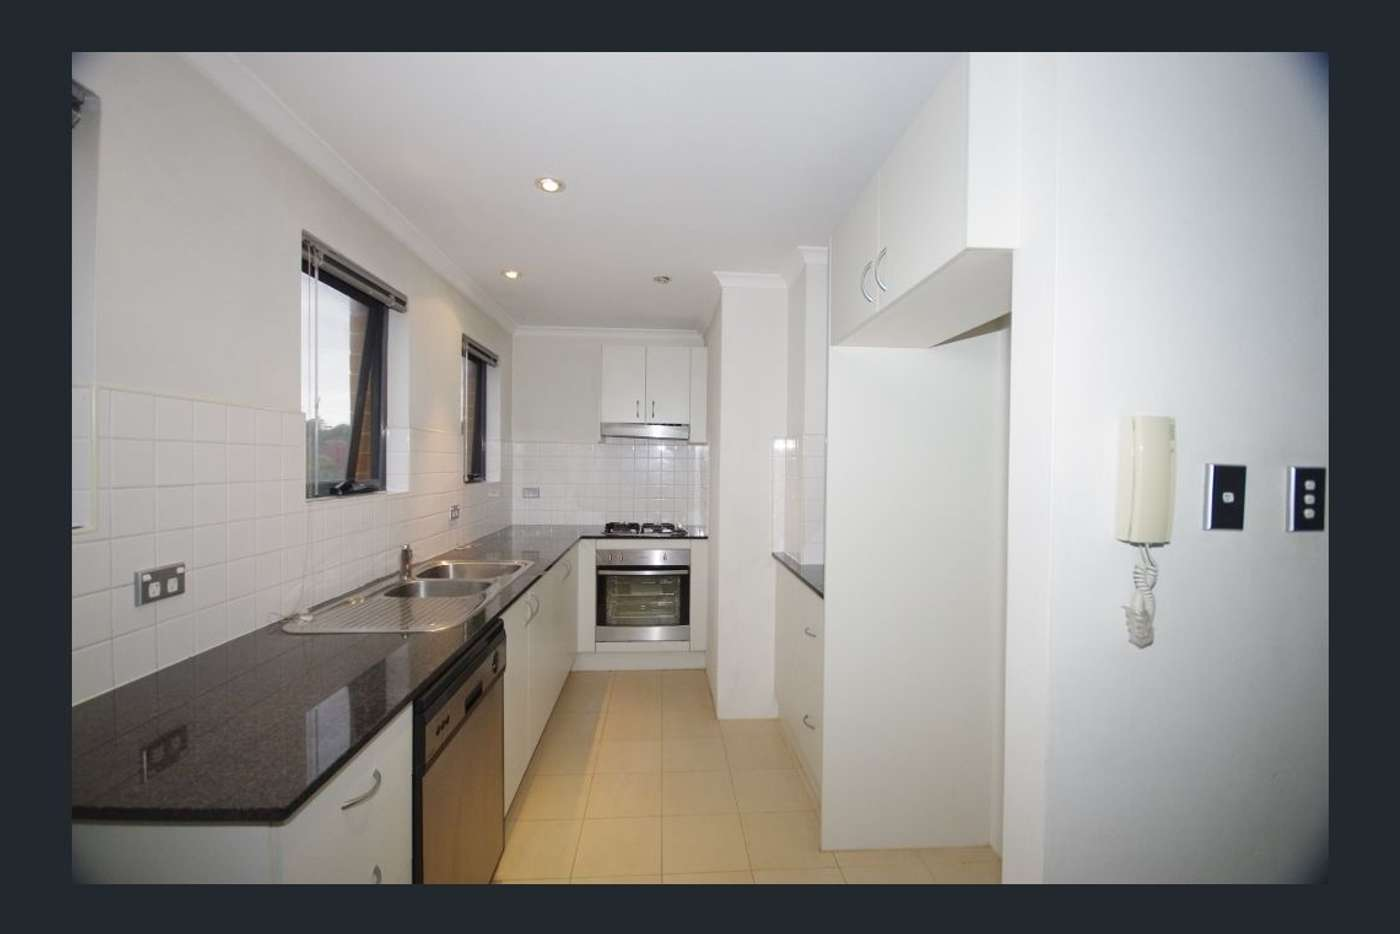 Main view of Homely apartment listing, 7/22-26 Herbert Street, West Ryde NSW 2114